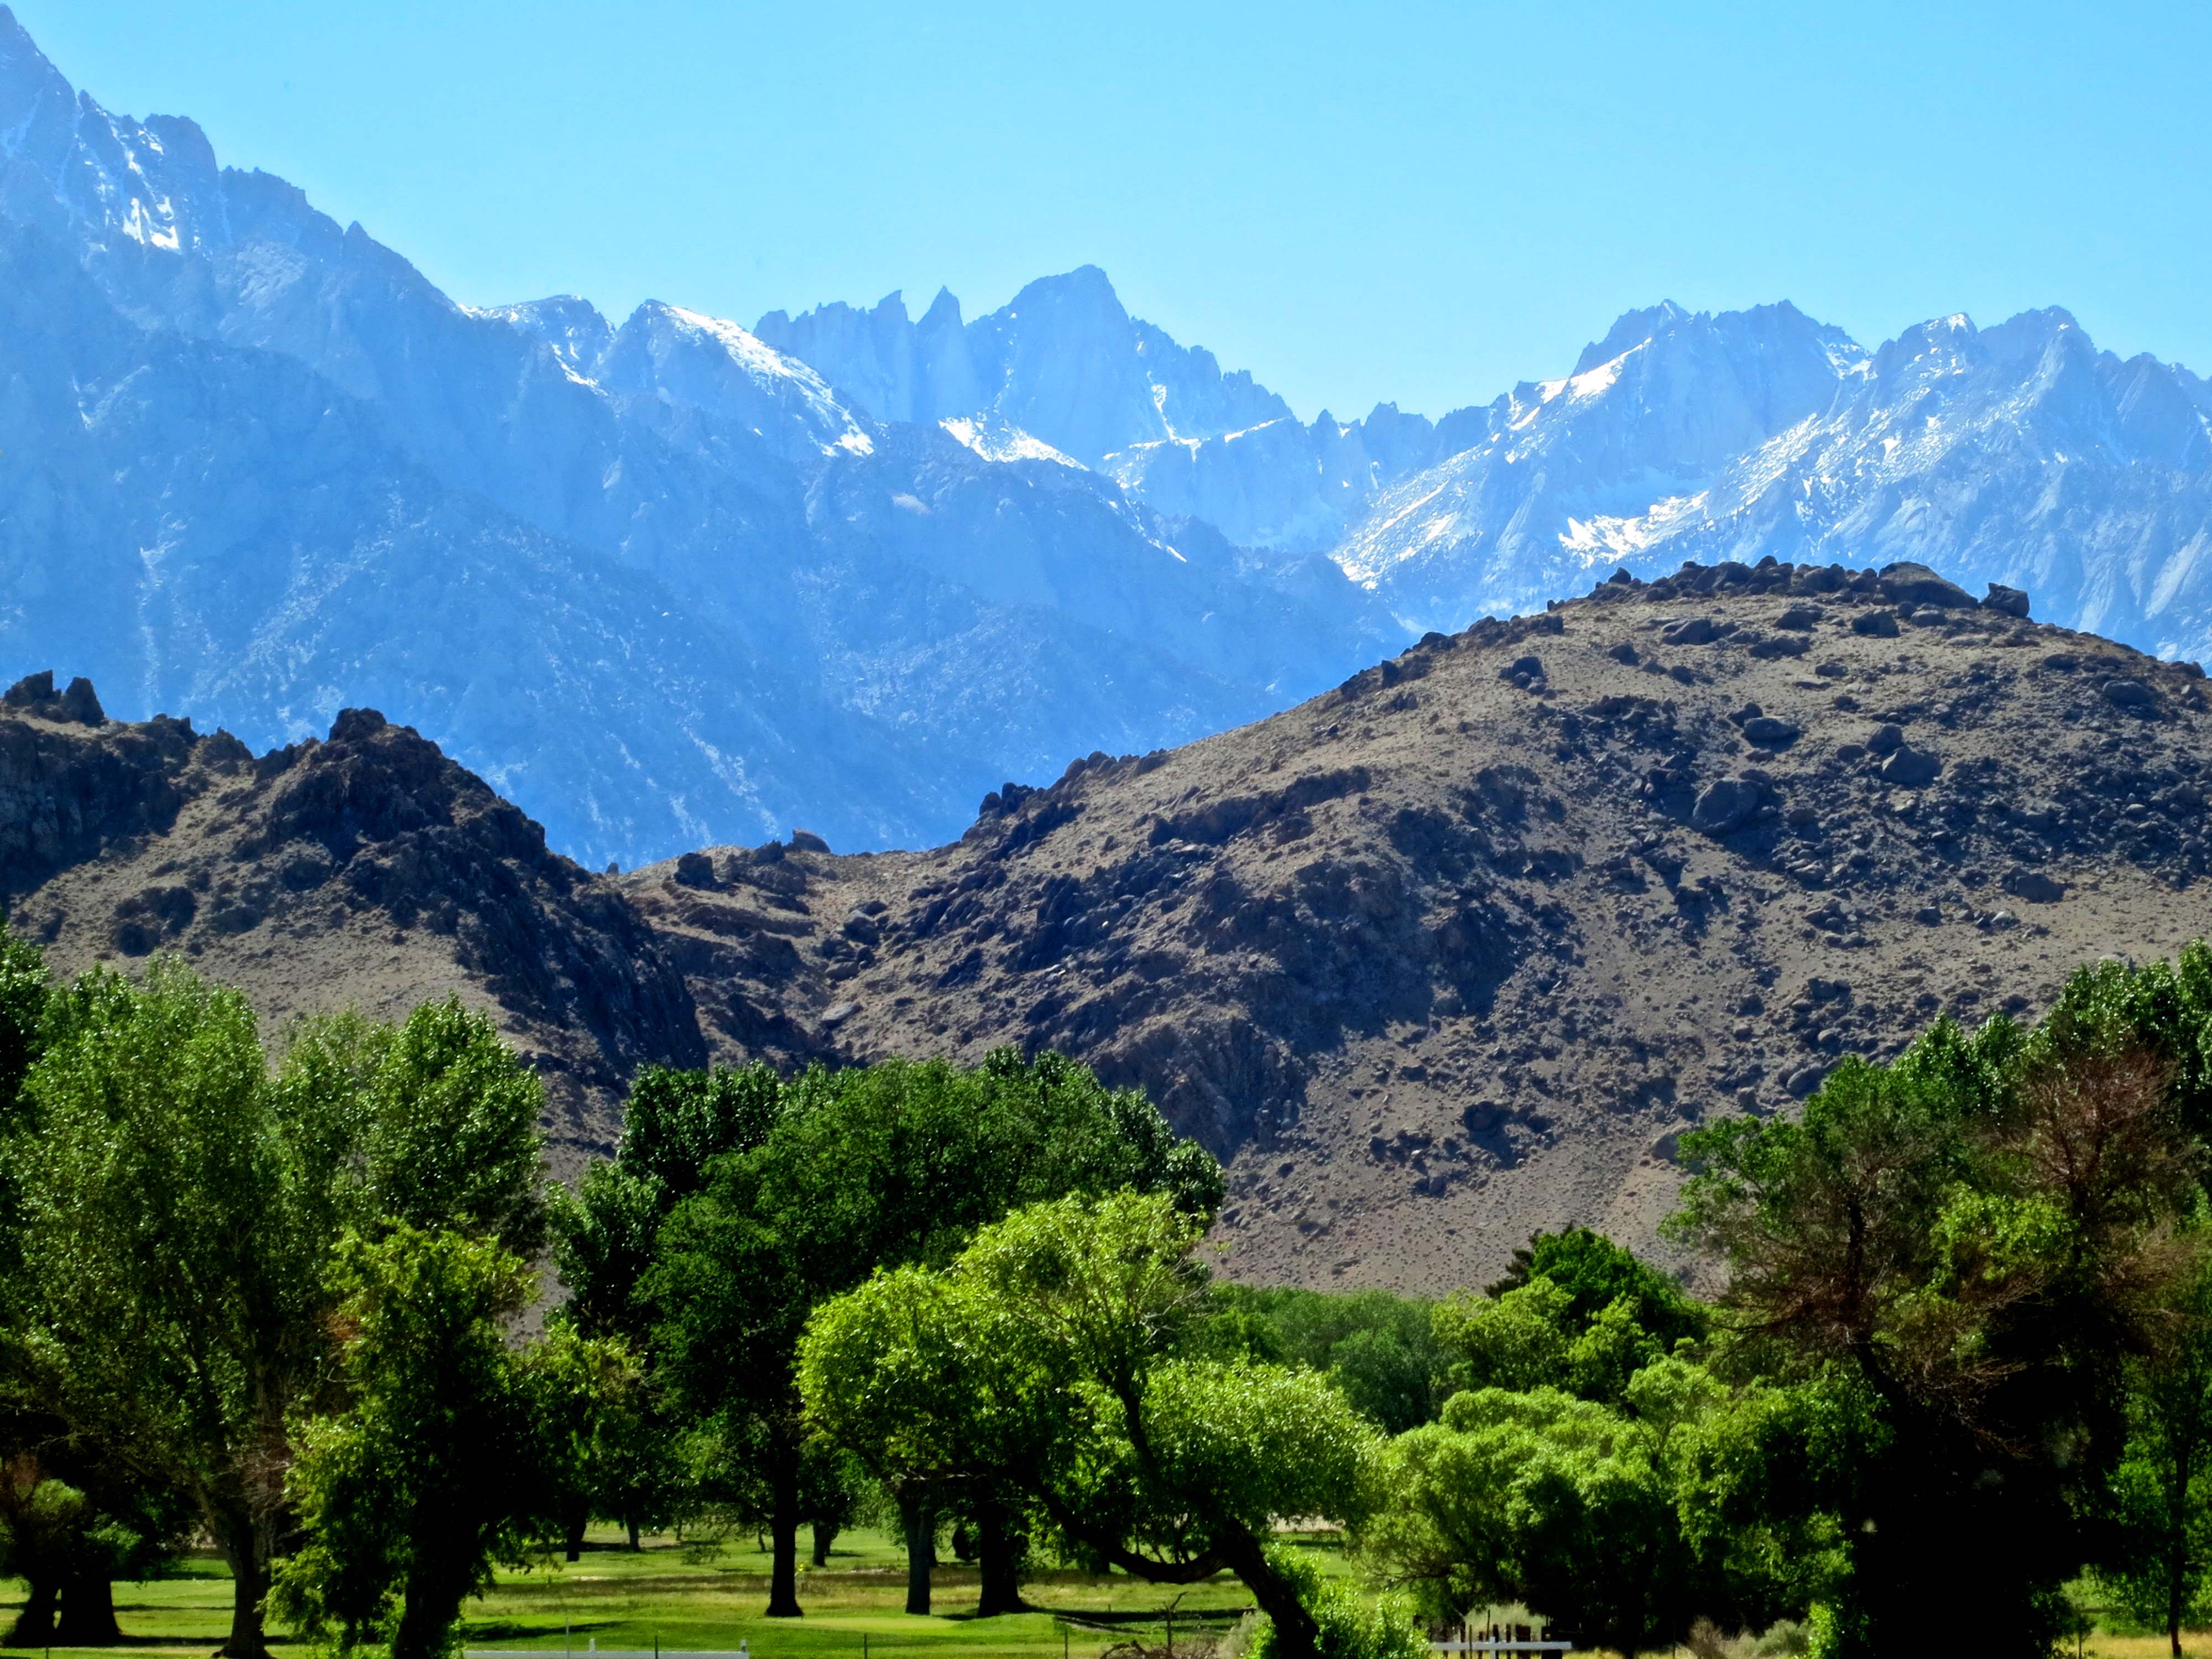 Highway 395 is one of America's most scenic drives. This view looking up at Mt. Whitney, center top, is one of the reasons why.